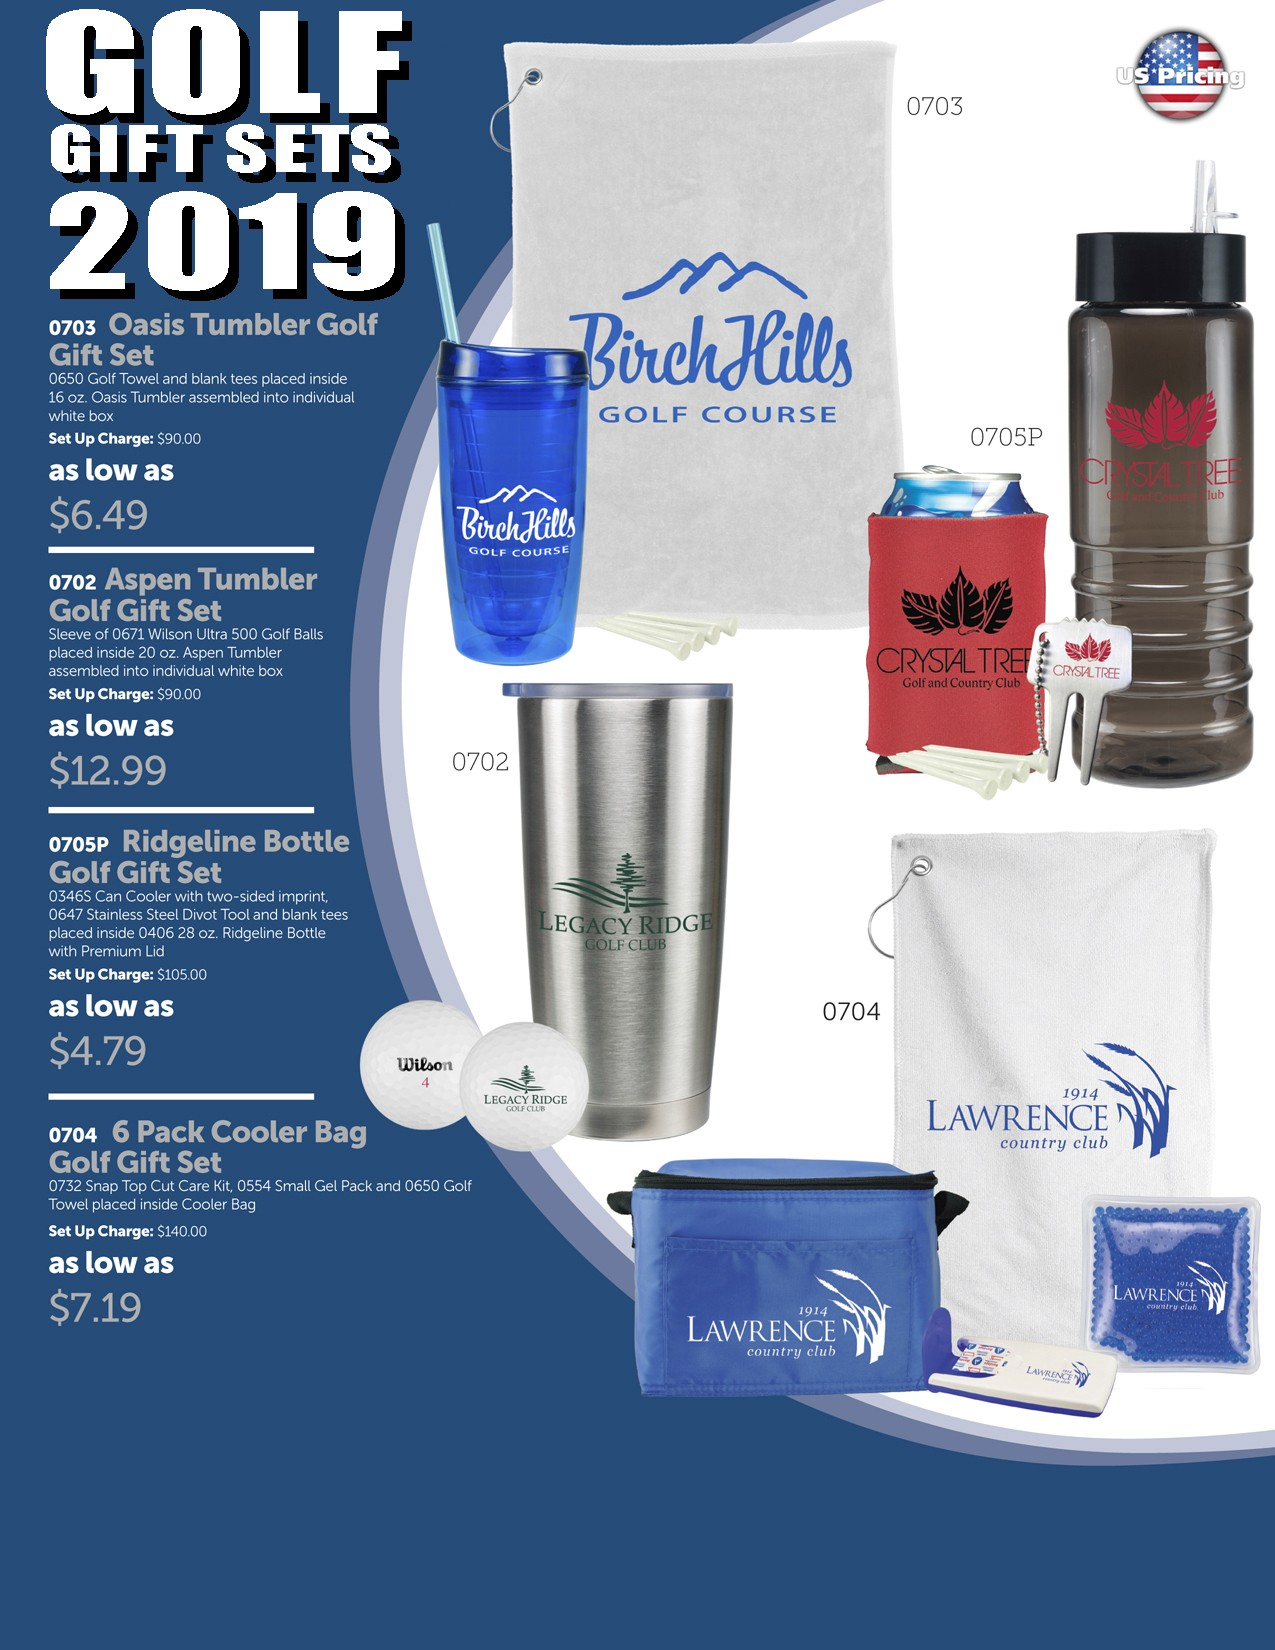 2019 Golf Gift Set Package 1A